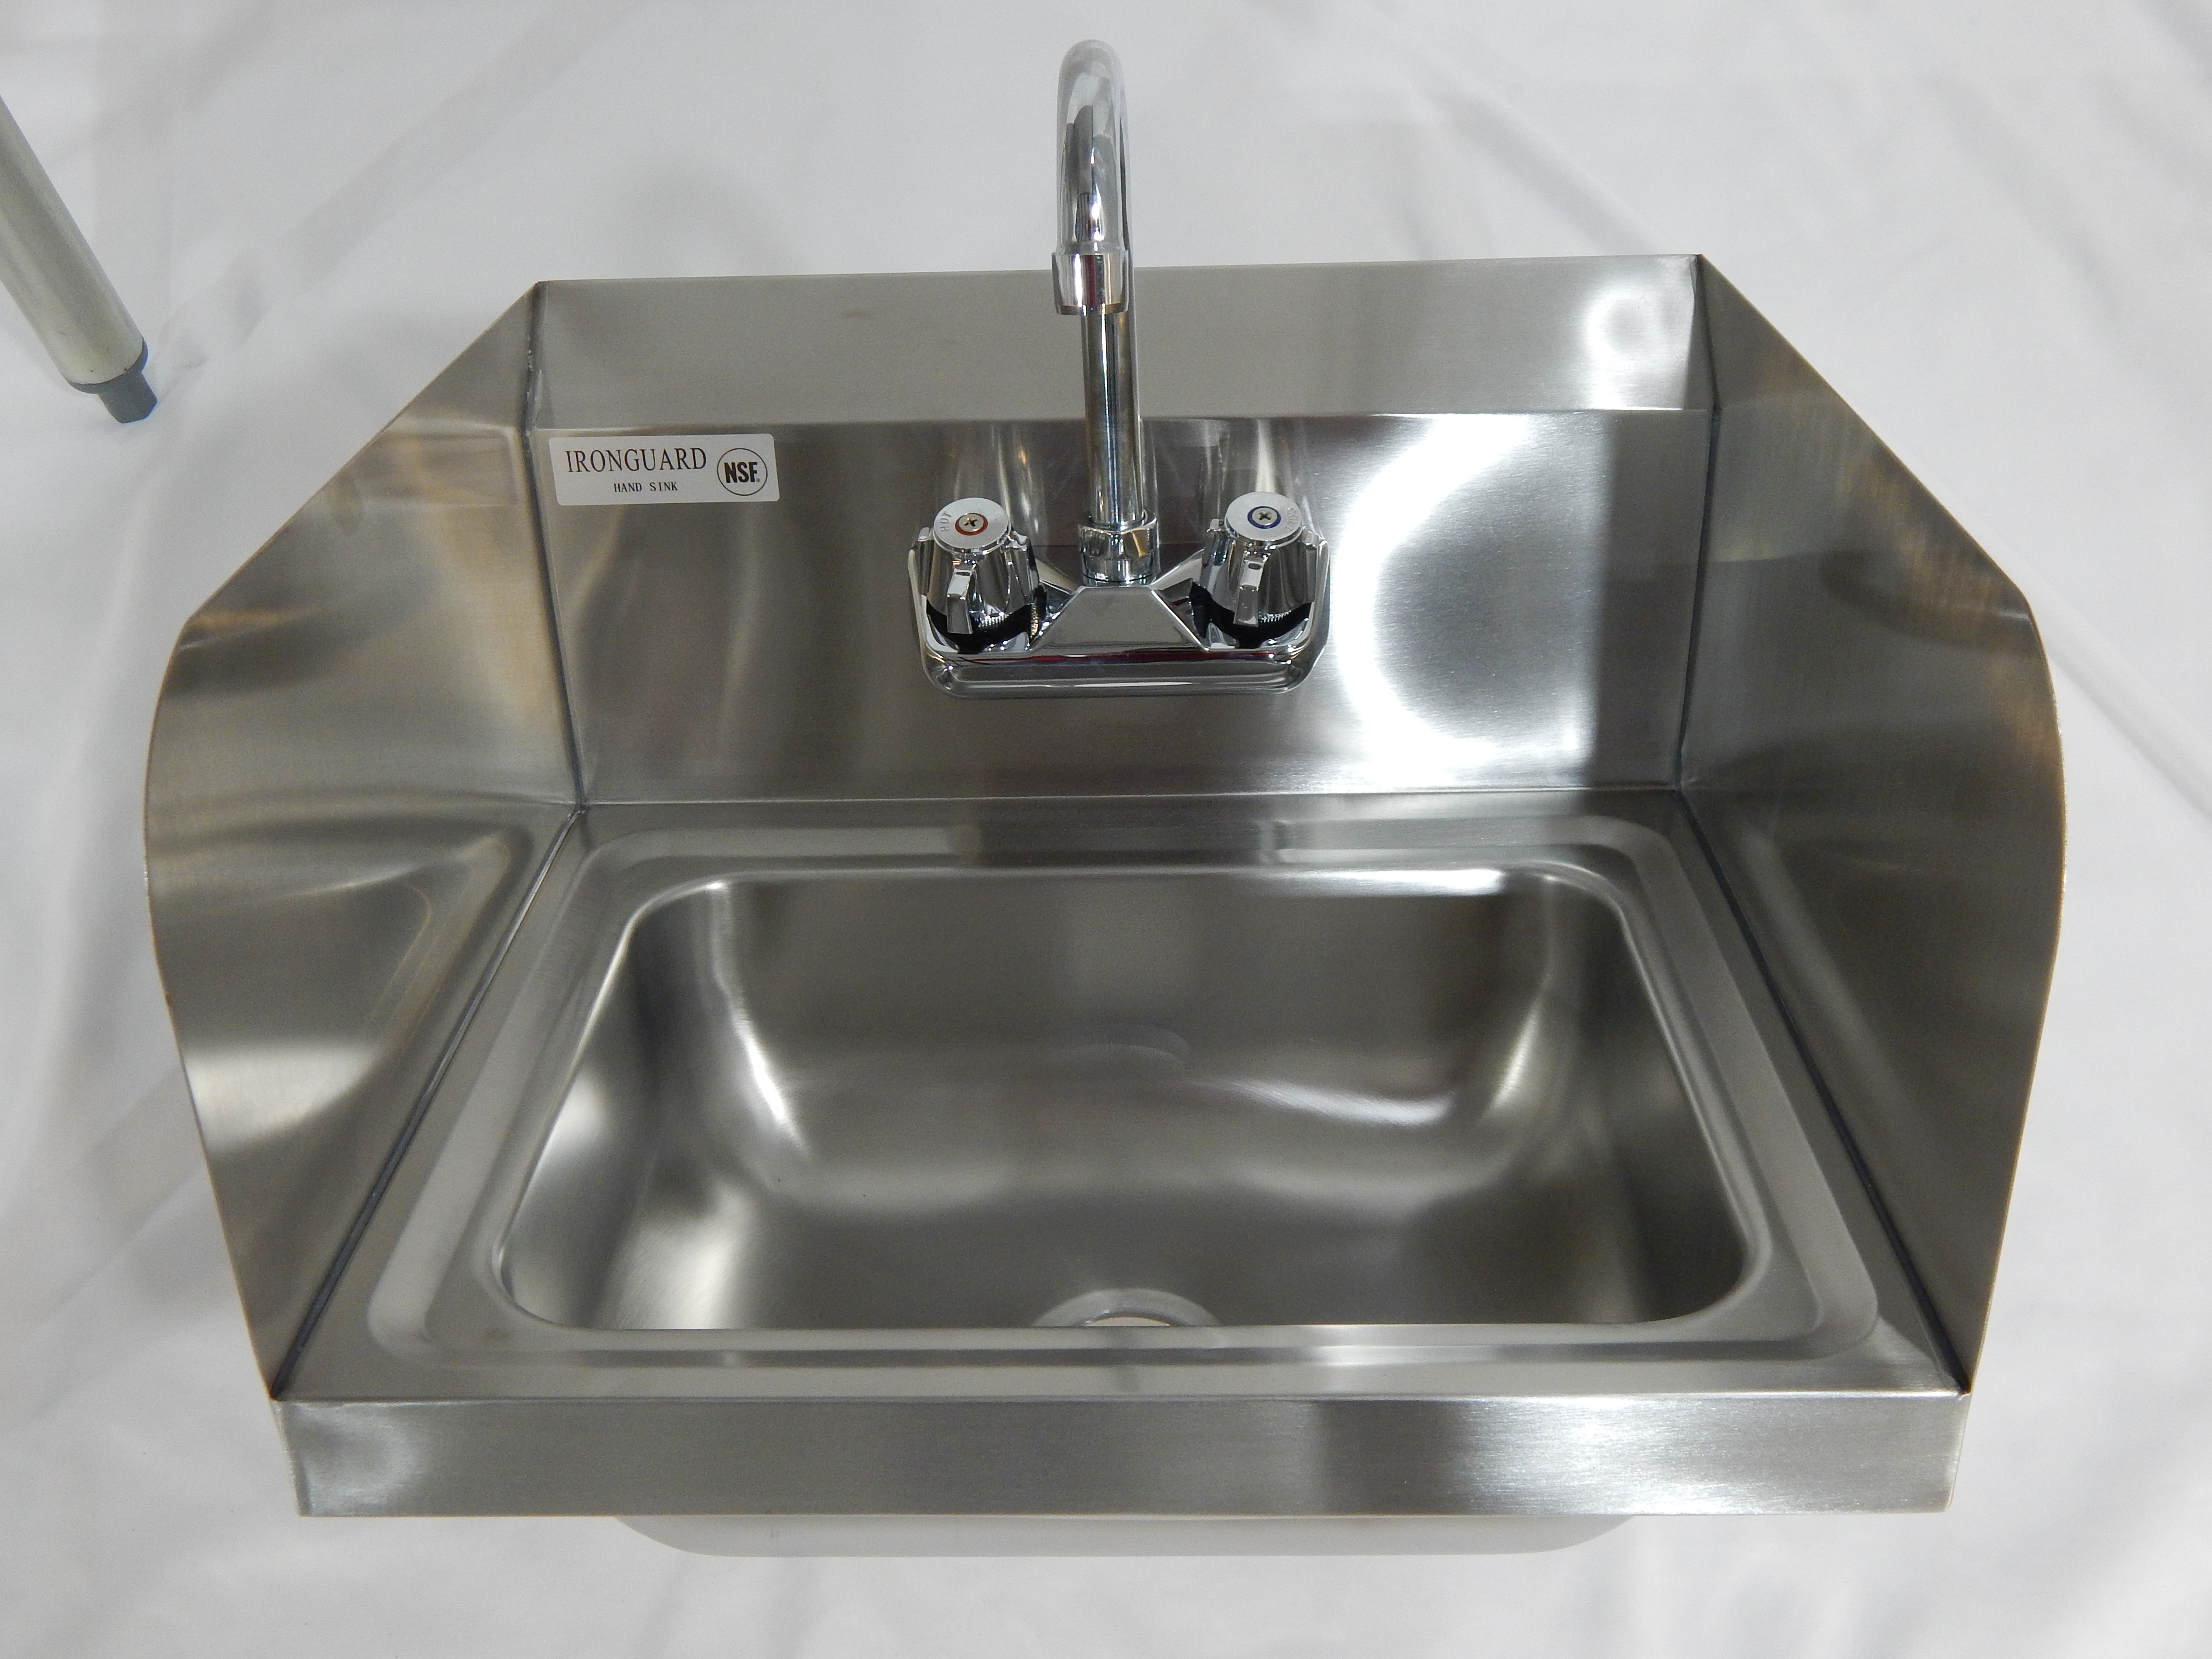 Iron Guard-Hand Sink 12 X 16 Wall Mount SS Sides W Faucet | Public Kitchen Supply